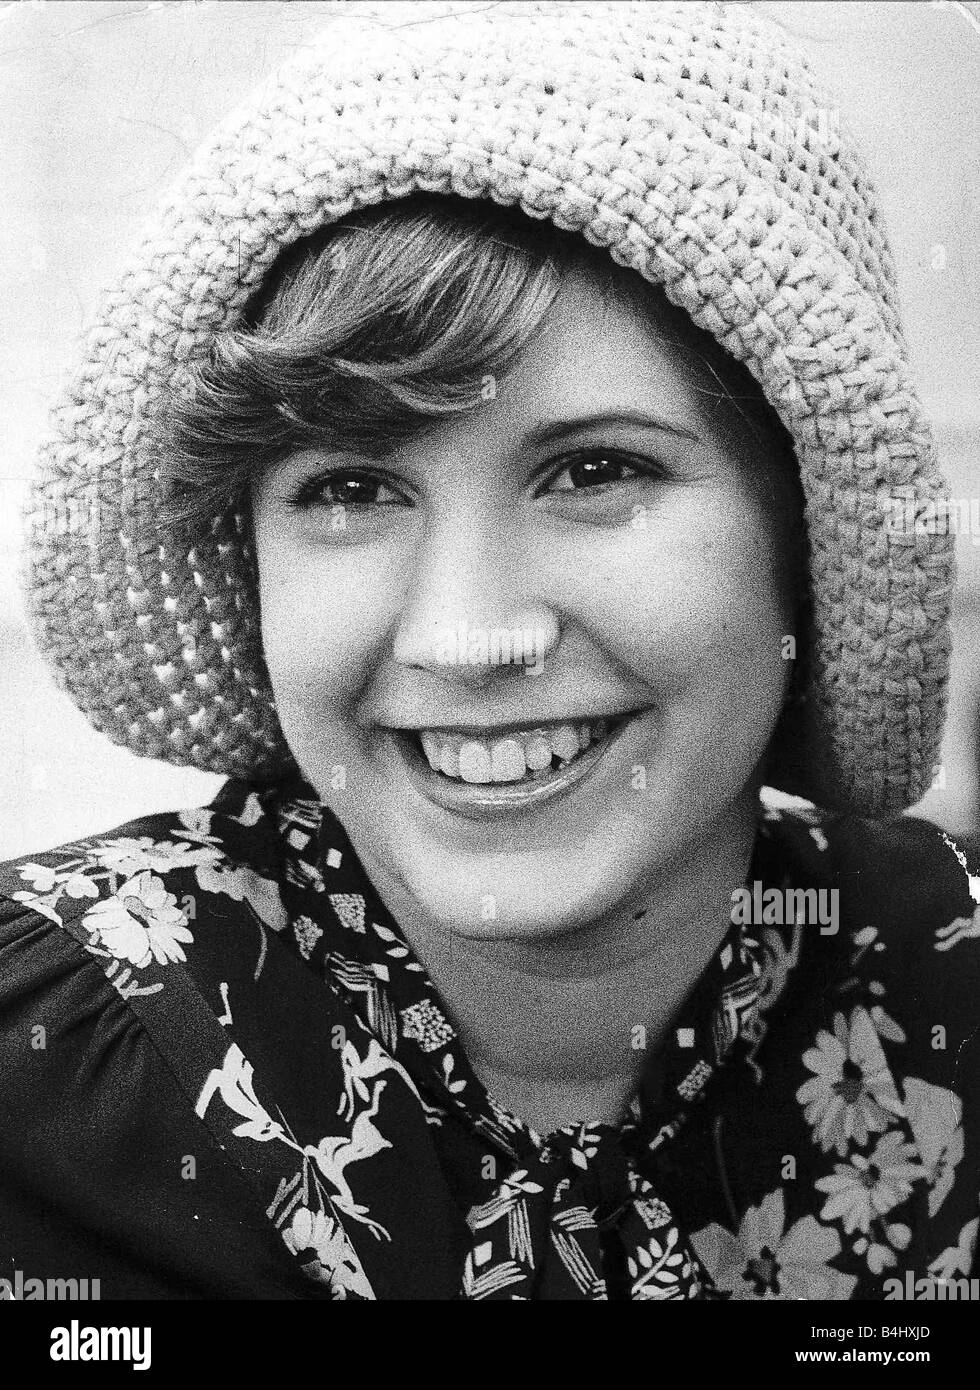 Carrie Fisher Actress Daughter Of Actress Debbie Reynolds July 1974 - Stock Image